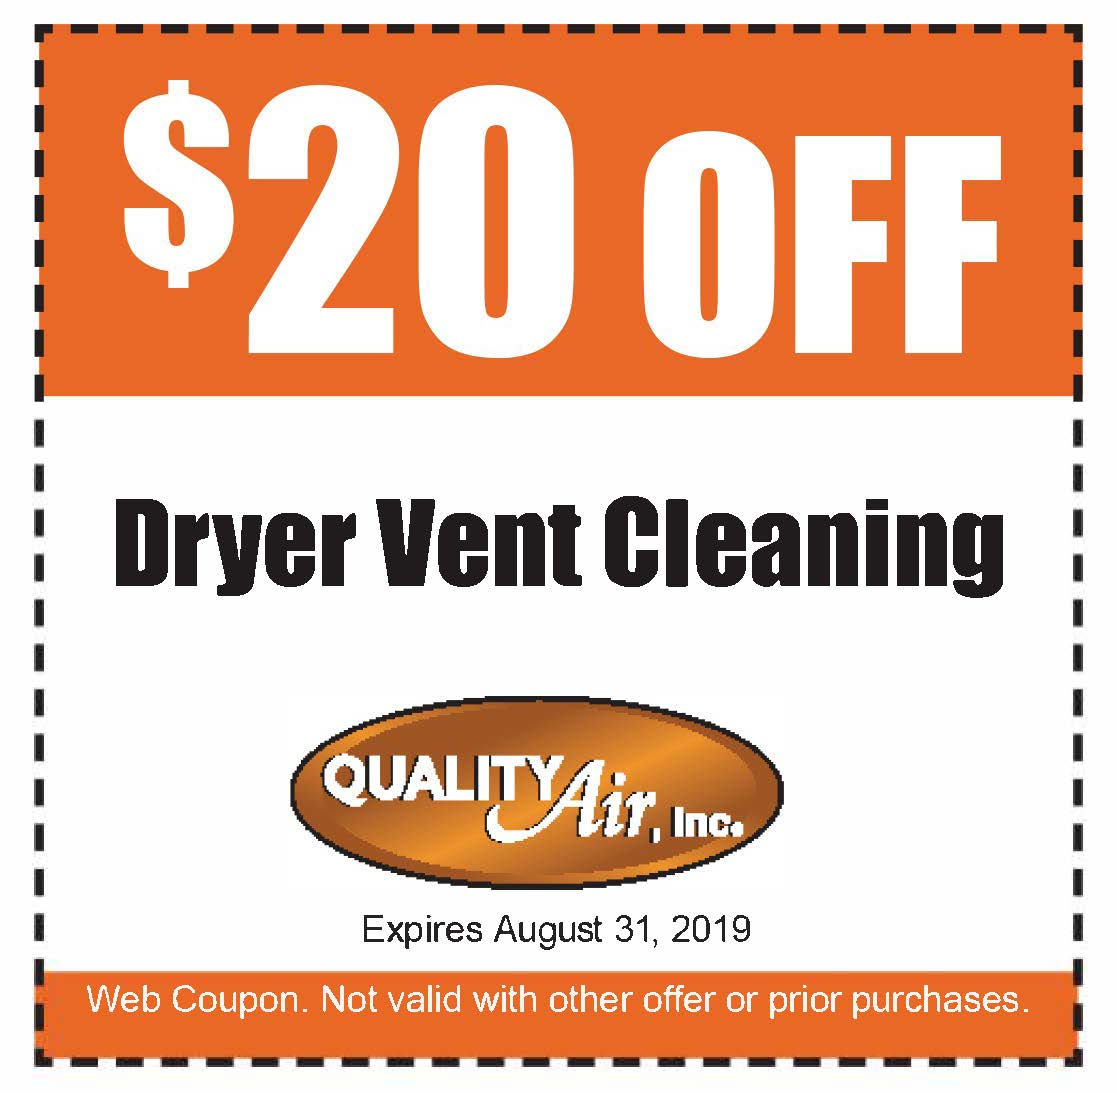 $20 Off Dryer Vent Cleaning